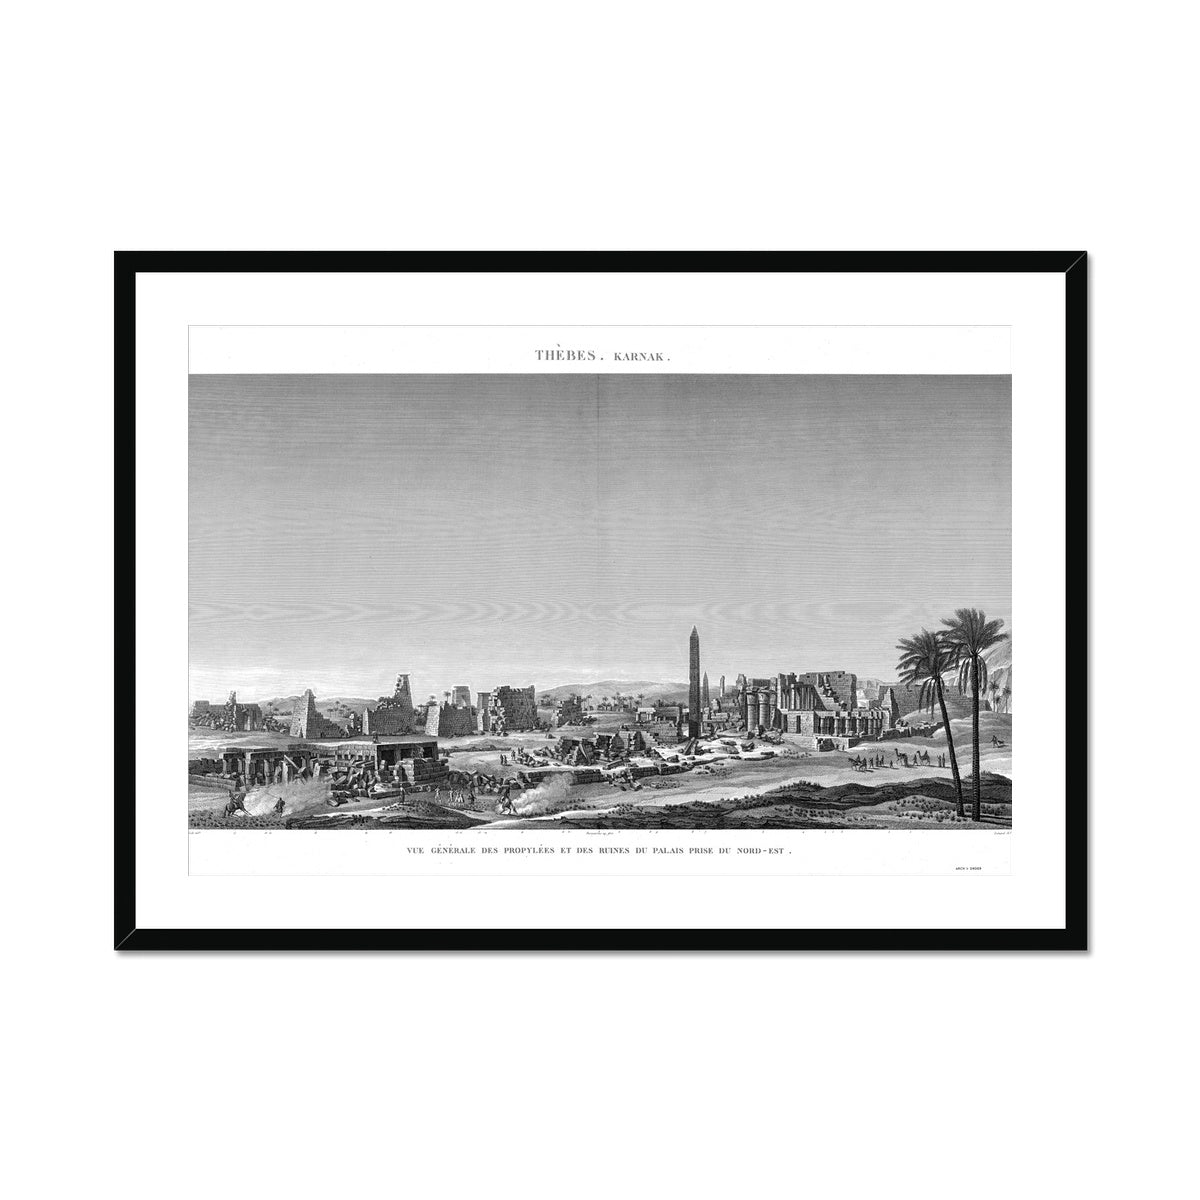 General View of the Palace Ruins - Karnak - Thebes Egypt -  Framed & Mounted Print